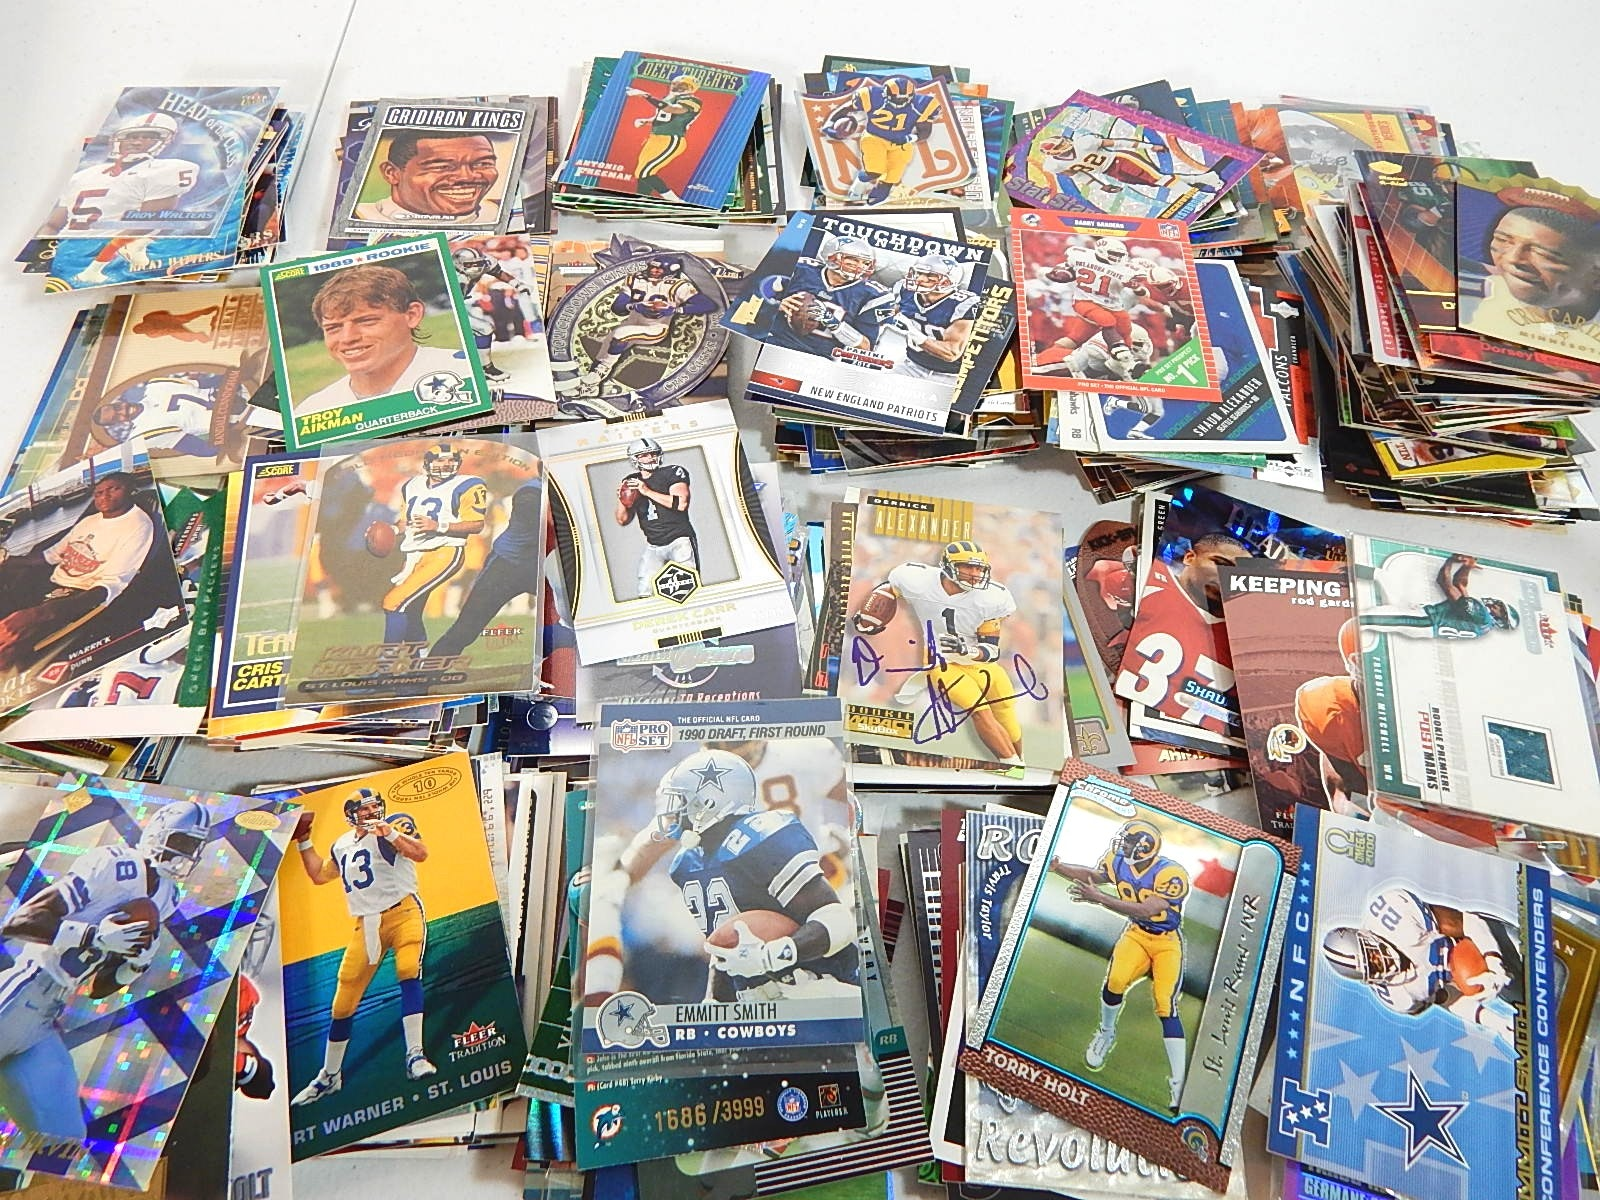 Star and Hall of Fame Football Card Collection with Over a Few 100 Cards